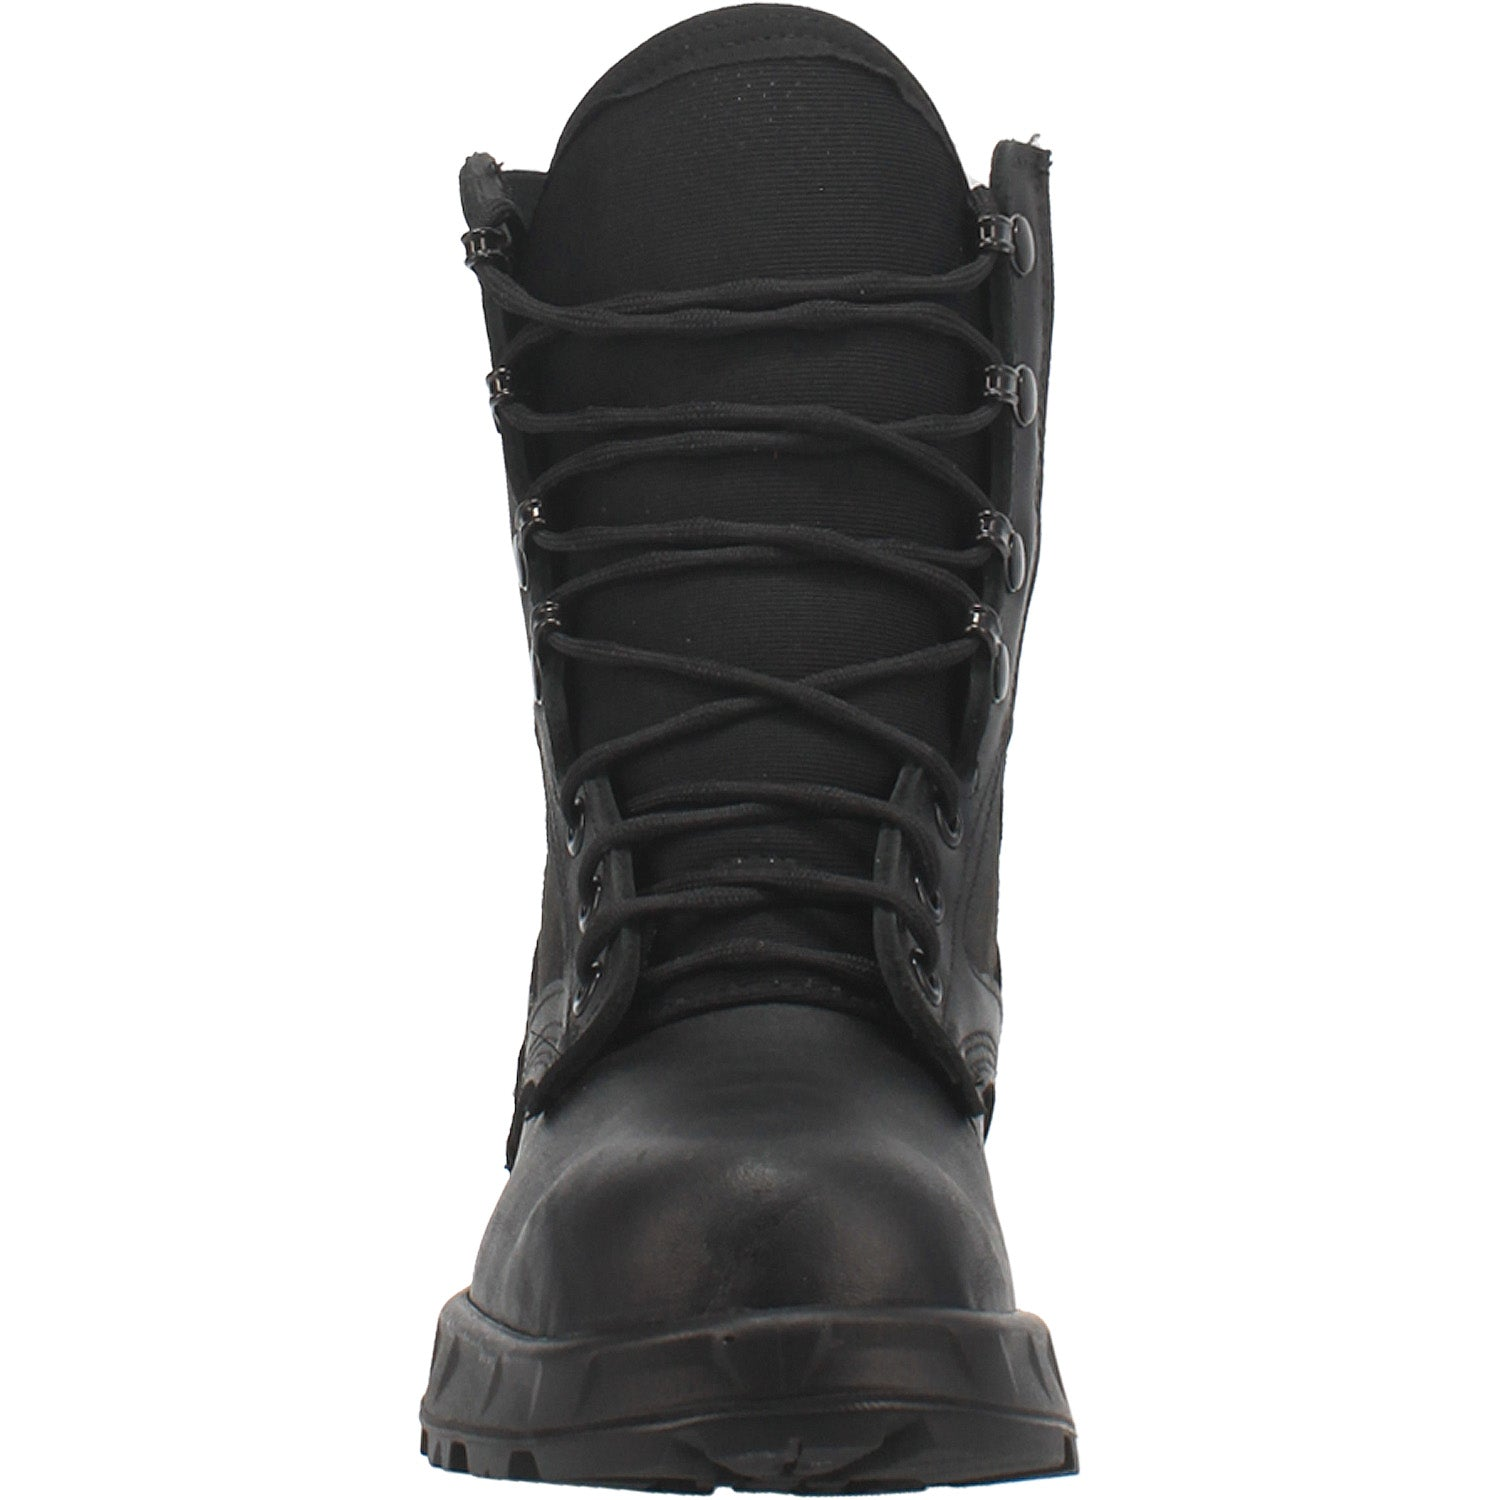 T2 Ultra Light Hot Weather Combat Boot 27986663112746